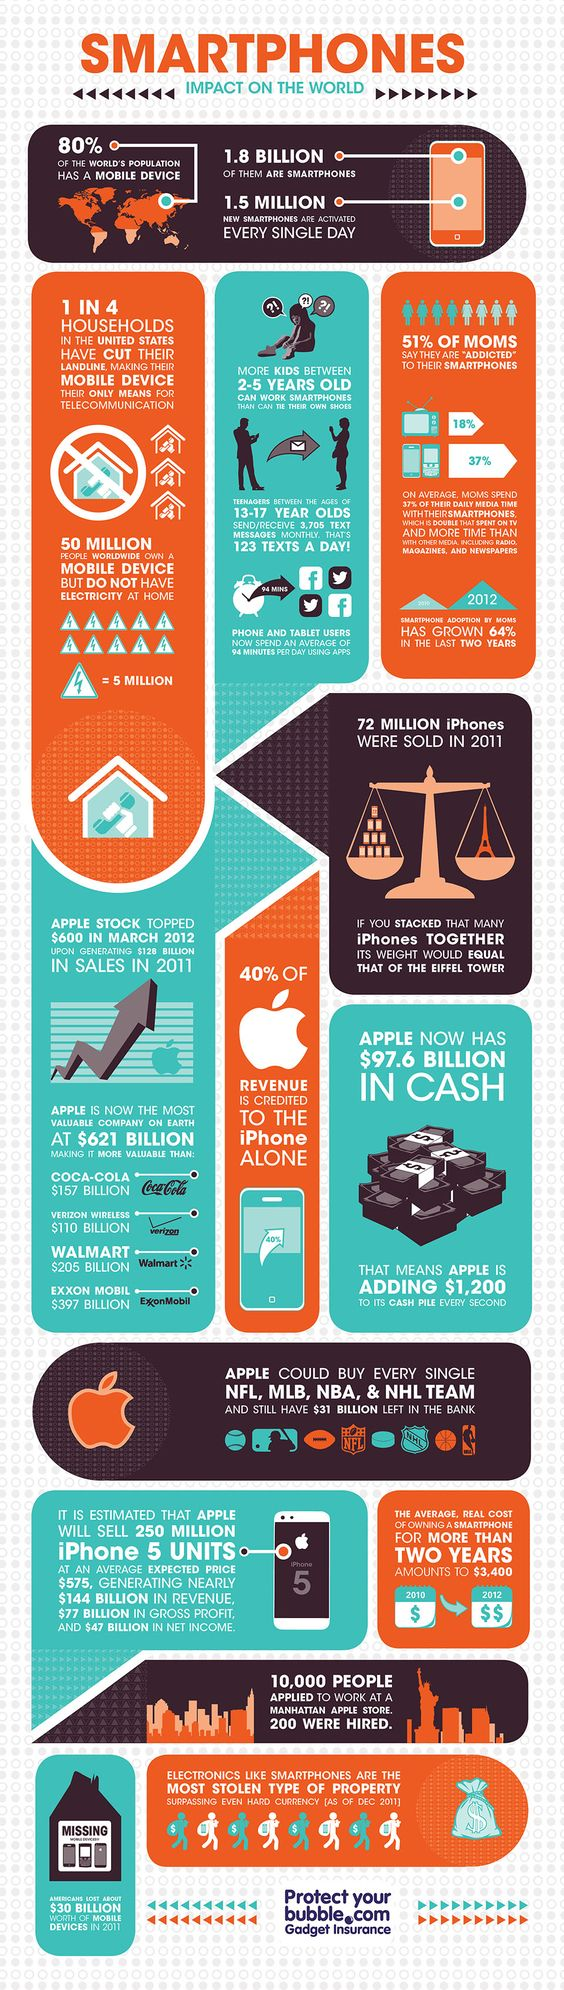 How Much Apple Make From The iPhone 5 - some terrifying/amazing stats on here!